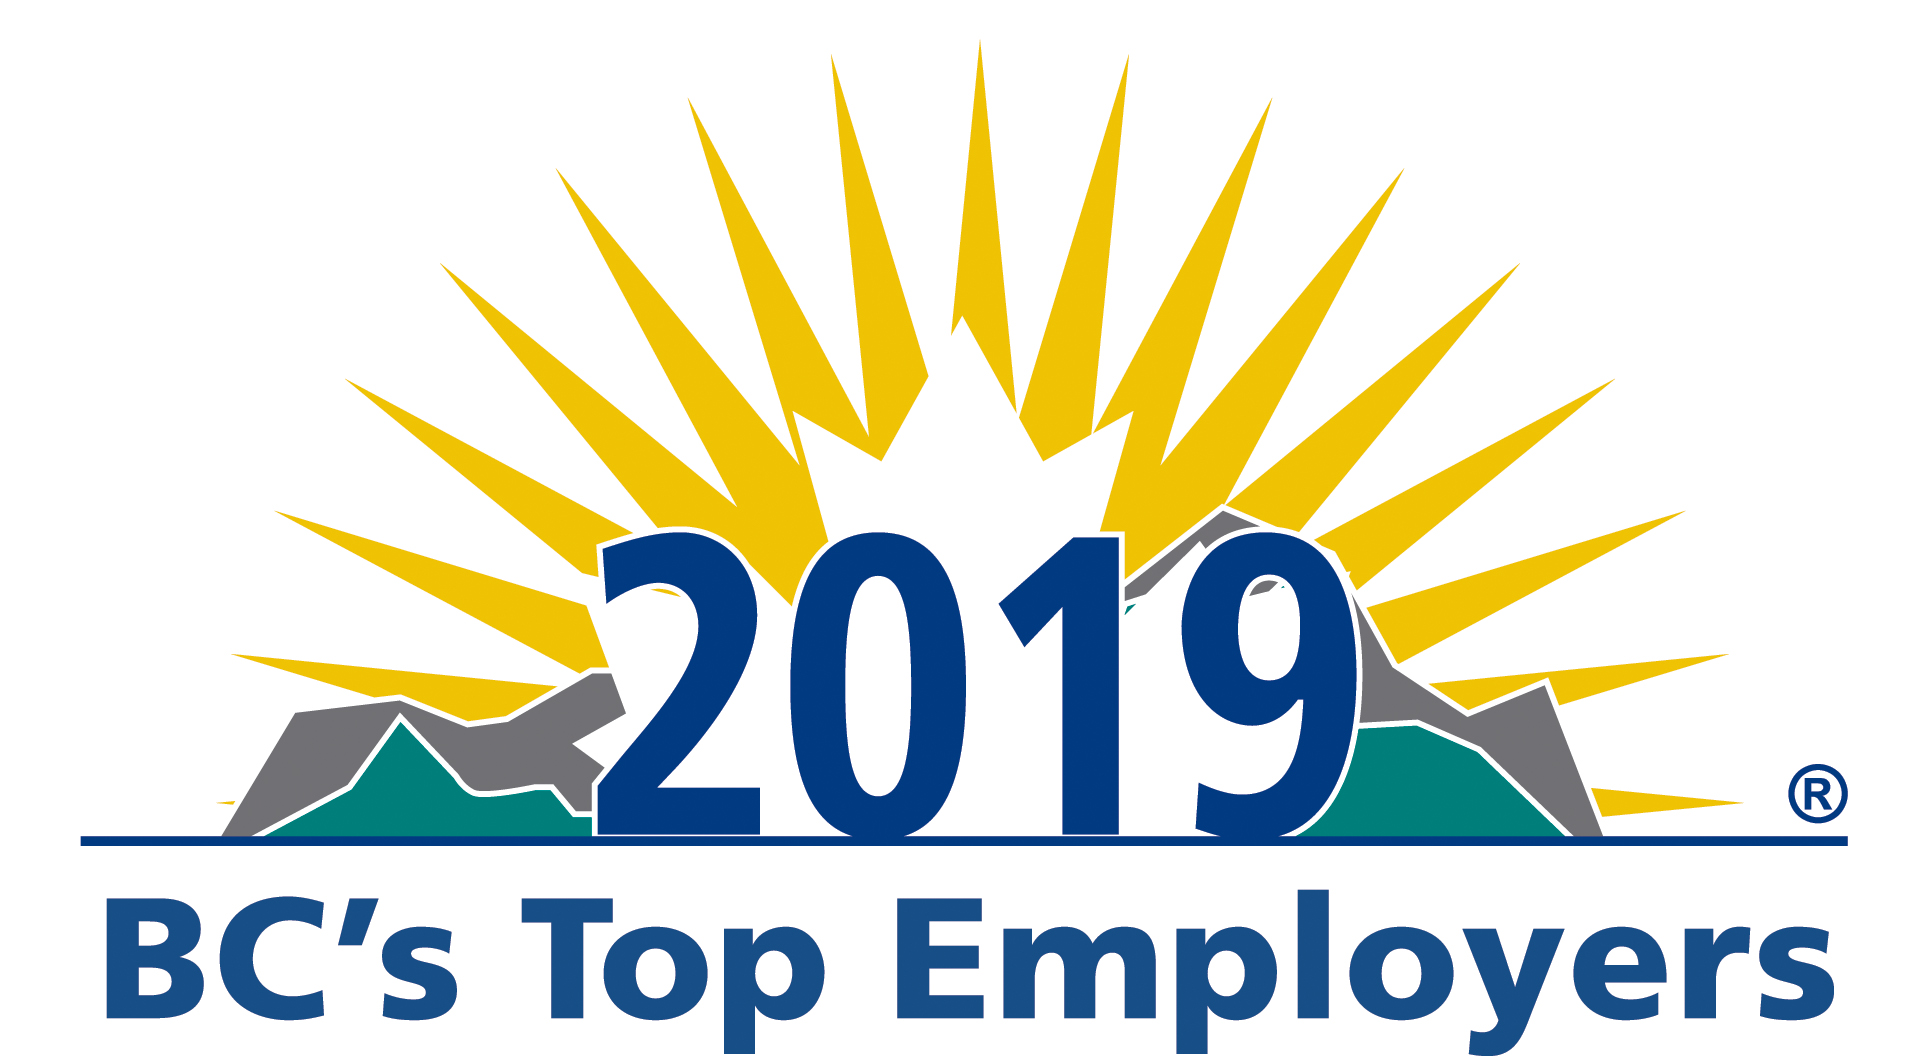 BC's Top Employers 2019 logo